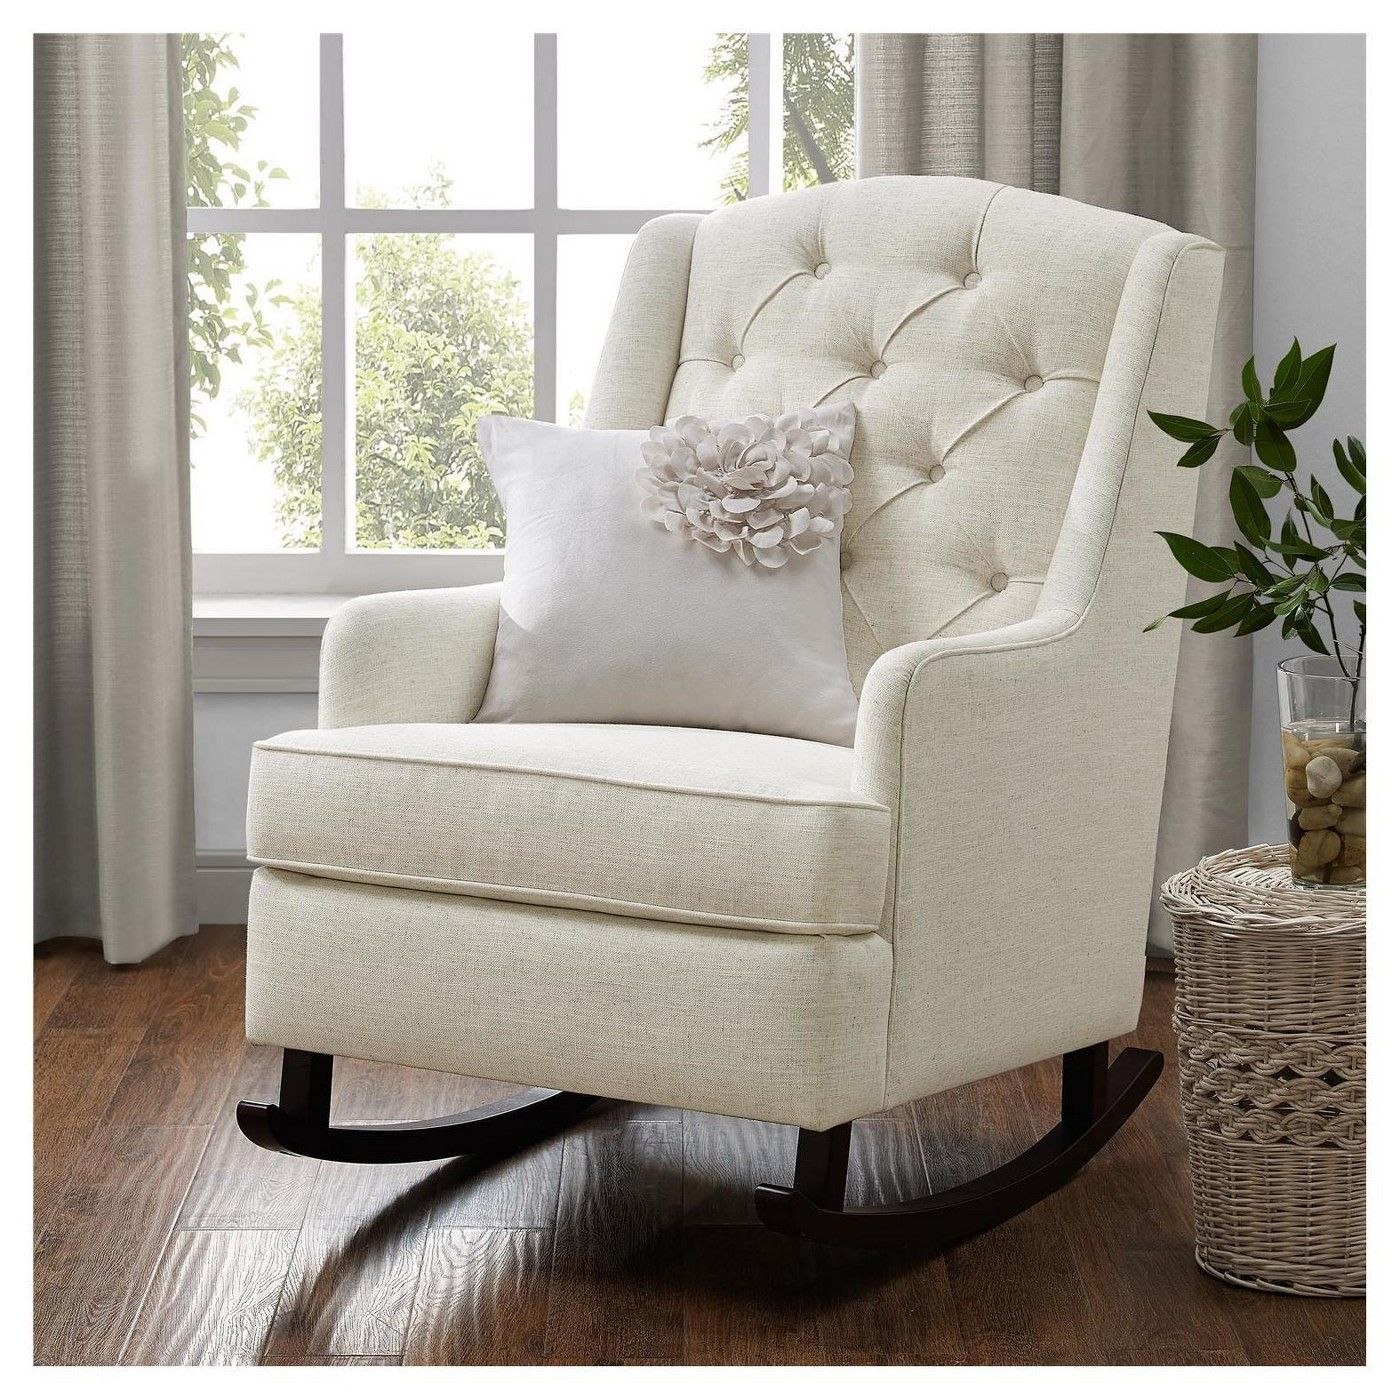 30 Best Cozy Chairs For Living Rooms   Most Comfortable Chairs For Reading